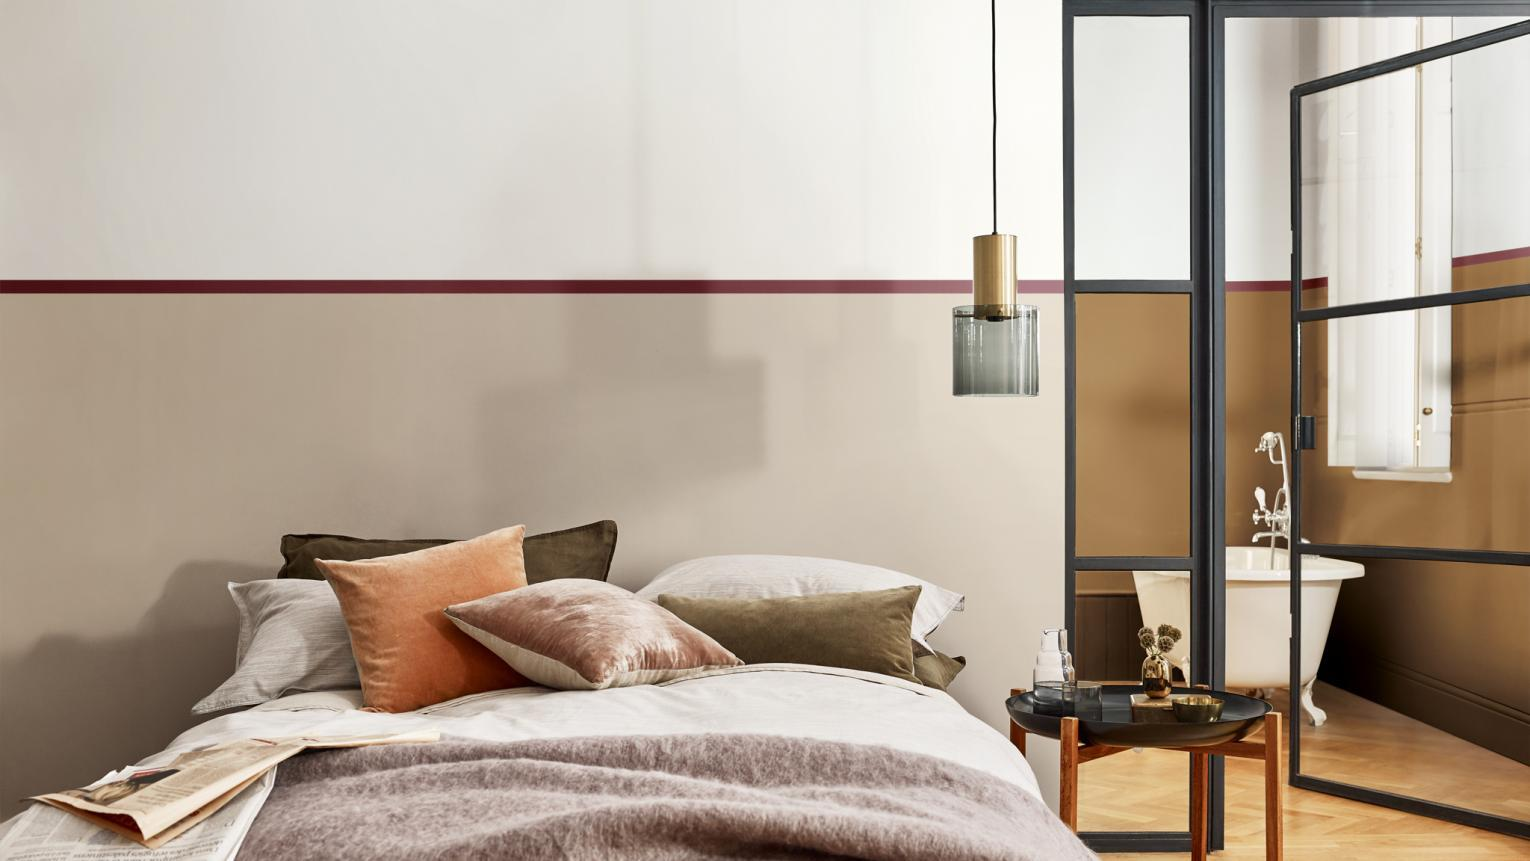 dulux-colour-futures-colour-of-the-year-2019-a-place-to-think-bedroom-inspiration-global-011